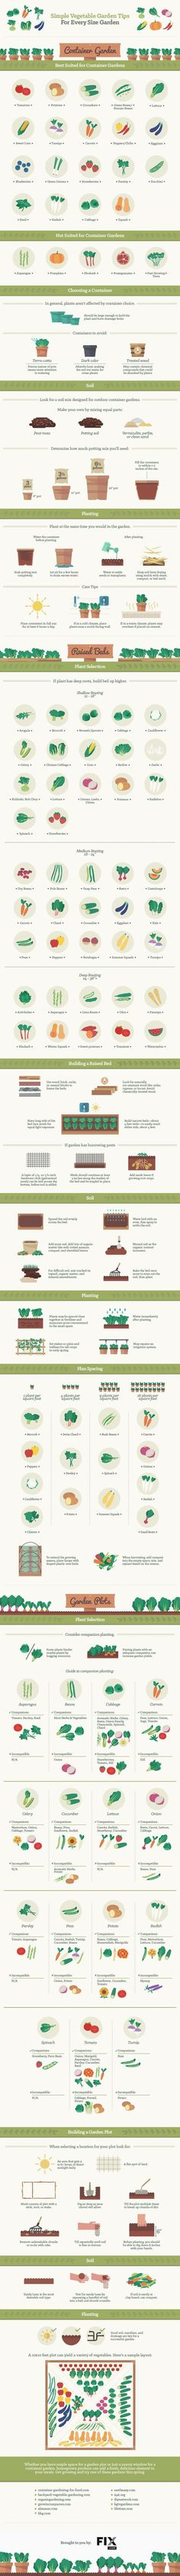 best Make Your Garden Grow images on Pinterest Vegetable